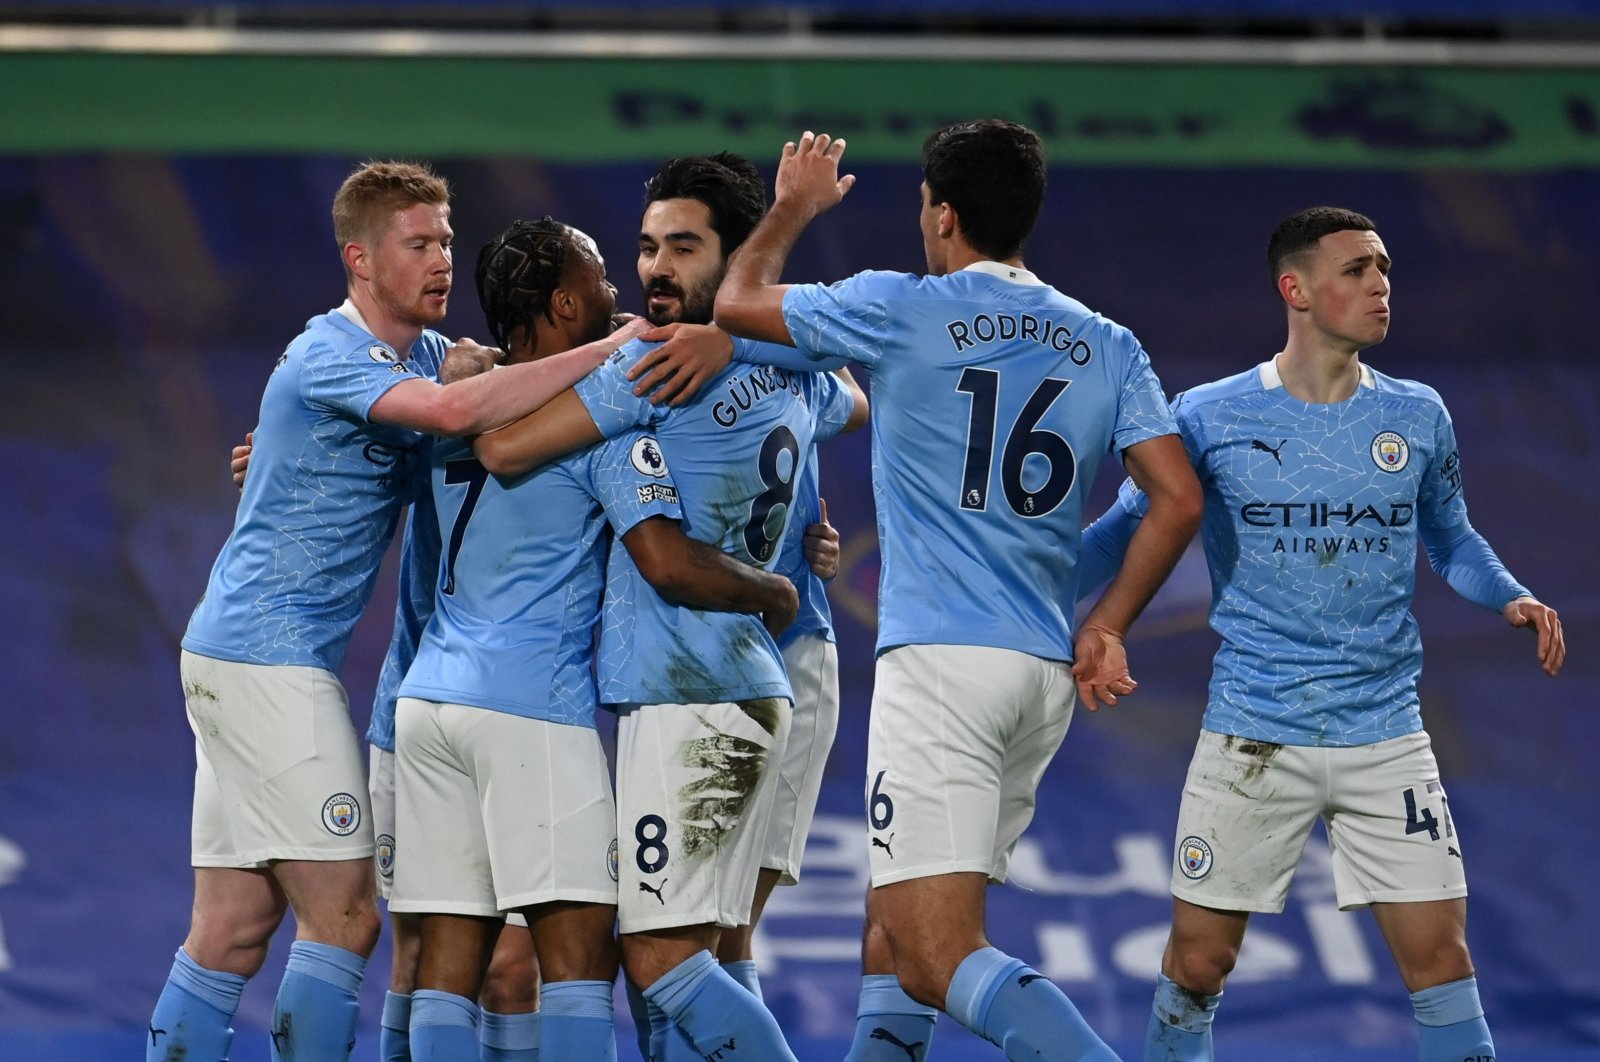 Manchester City players celebrate a goal during a Premier League match against Chelsea at the Stamford Bridge, in London, Jan. 3, 2021. (AFP Photo)